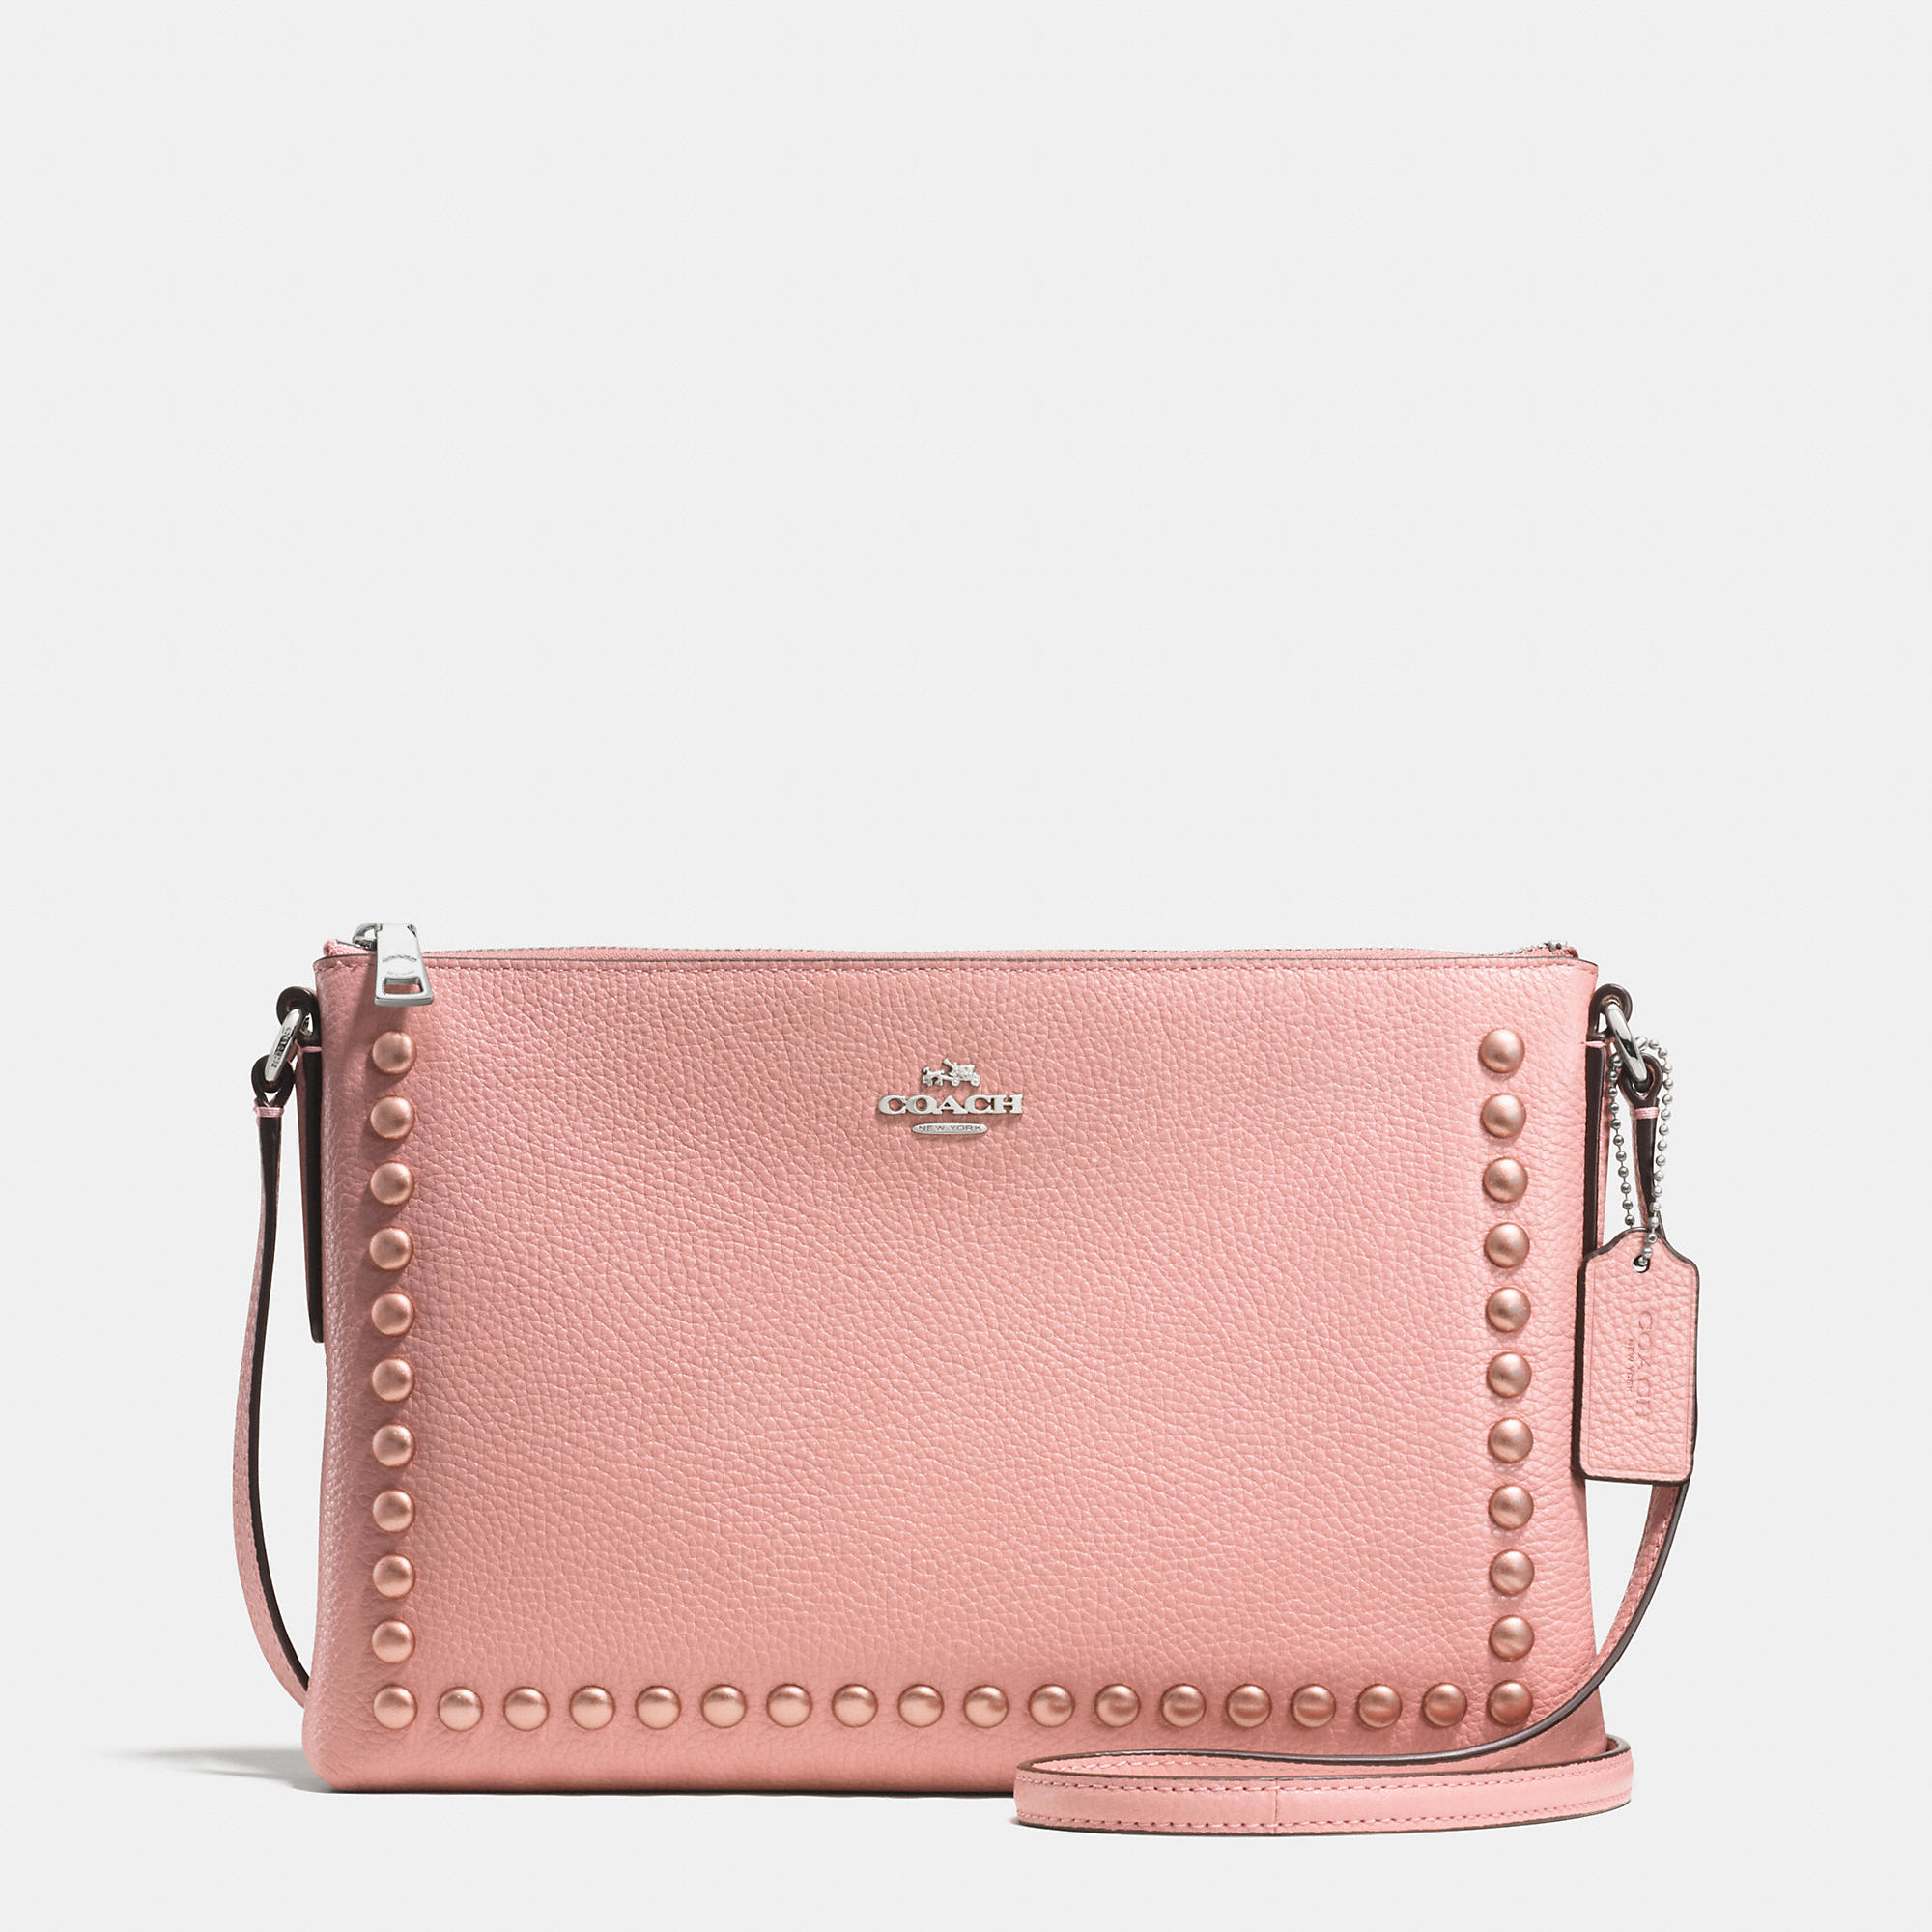 lyst coach lacquer rivets journal crossbody in pebble leather in pink rh lyst com